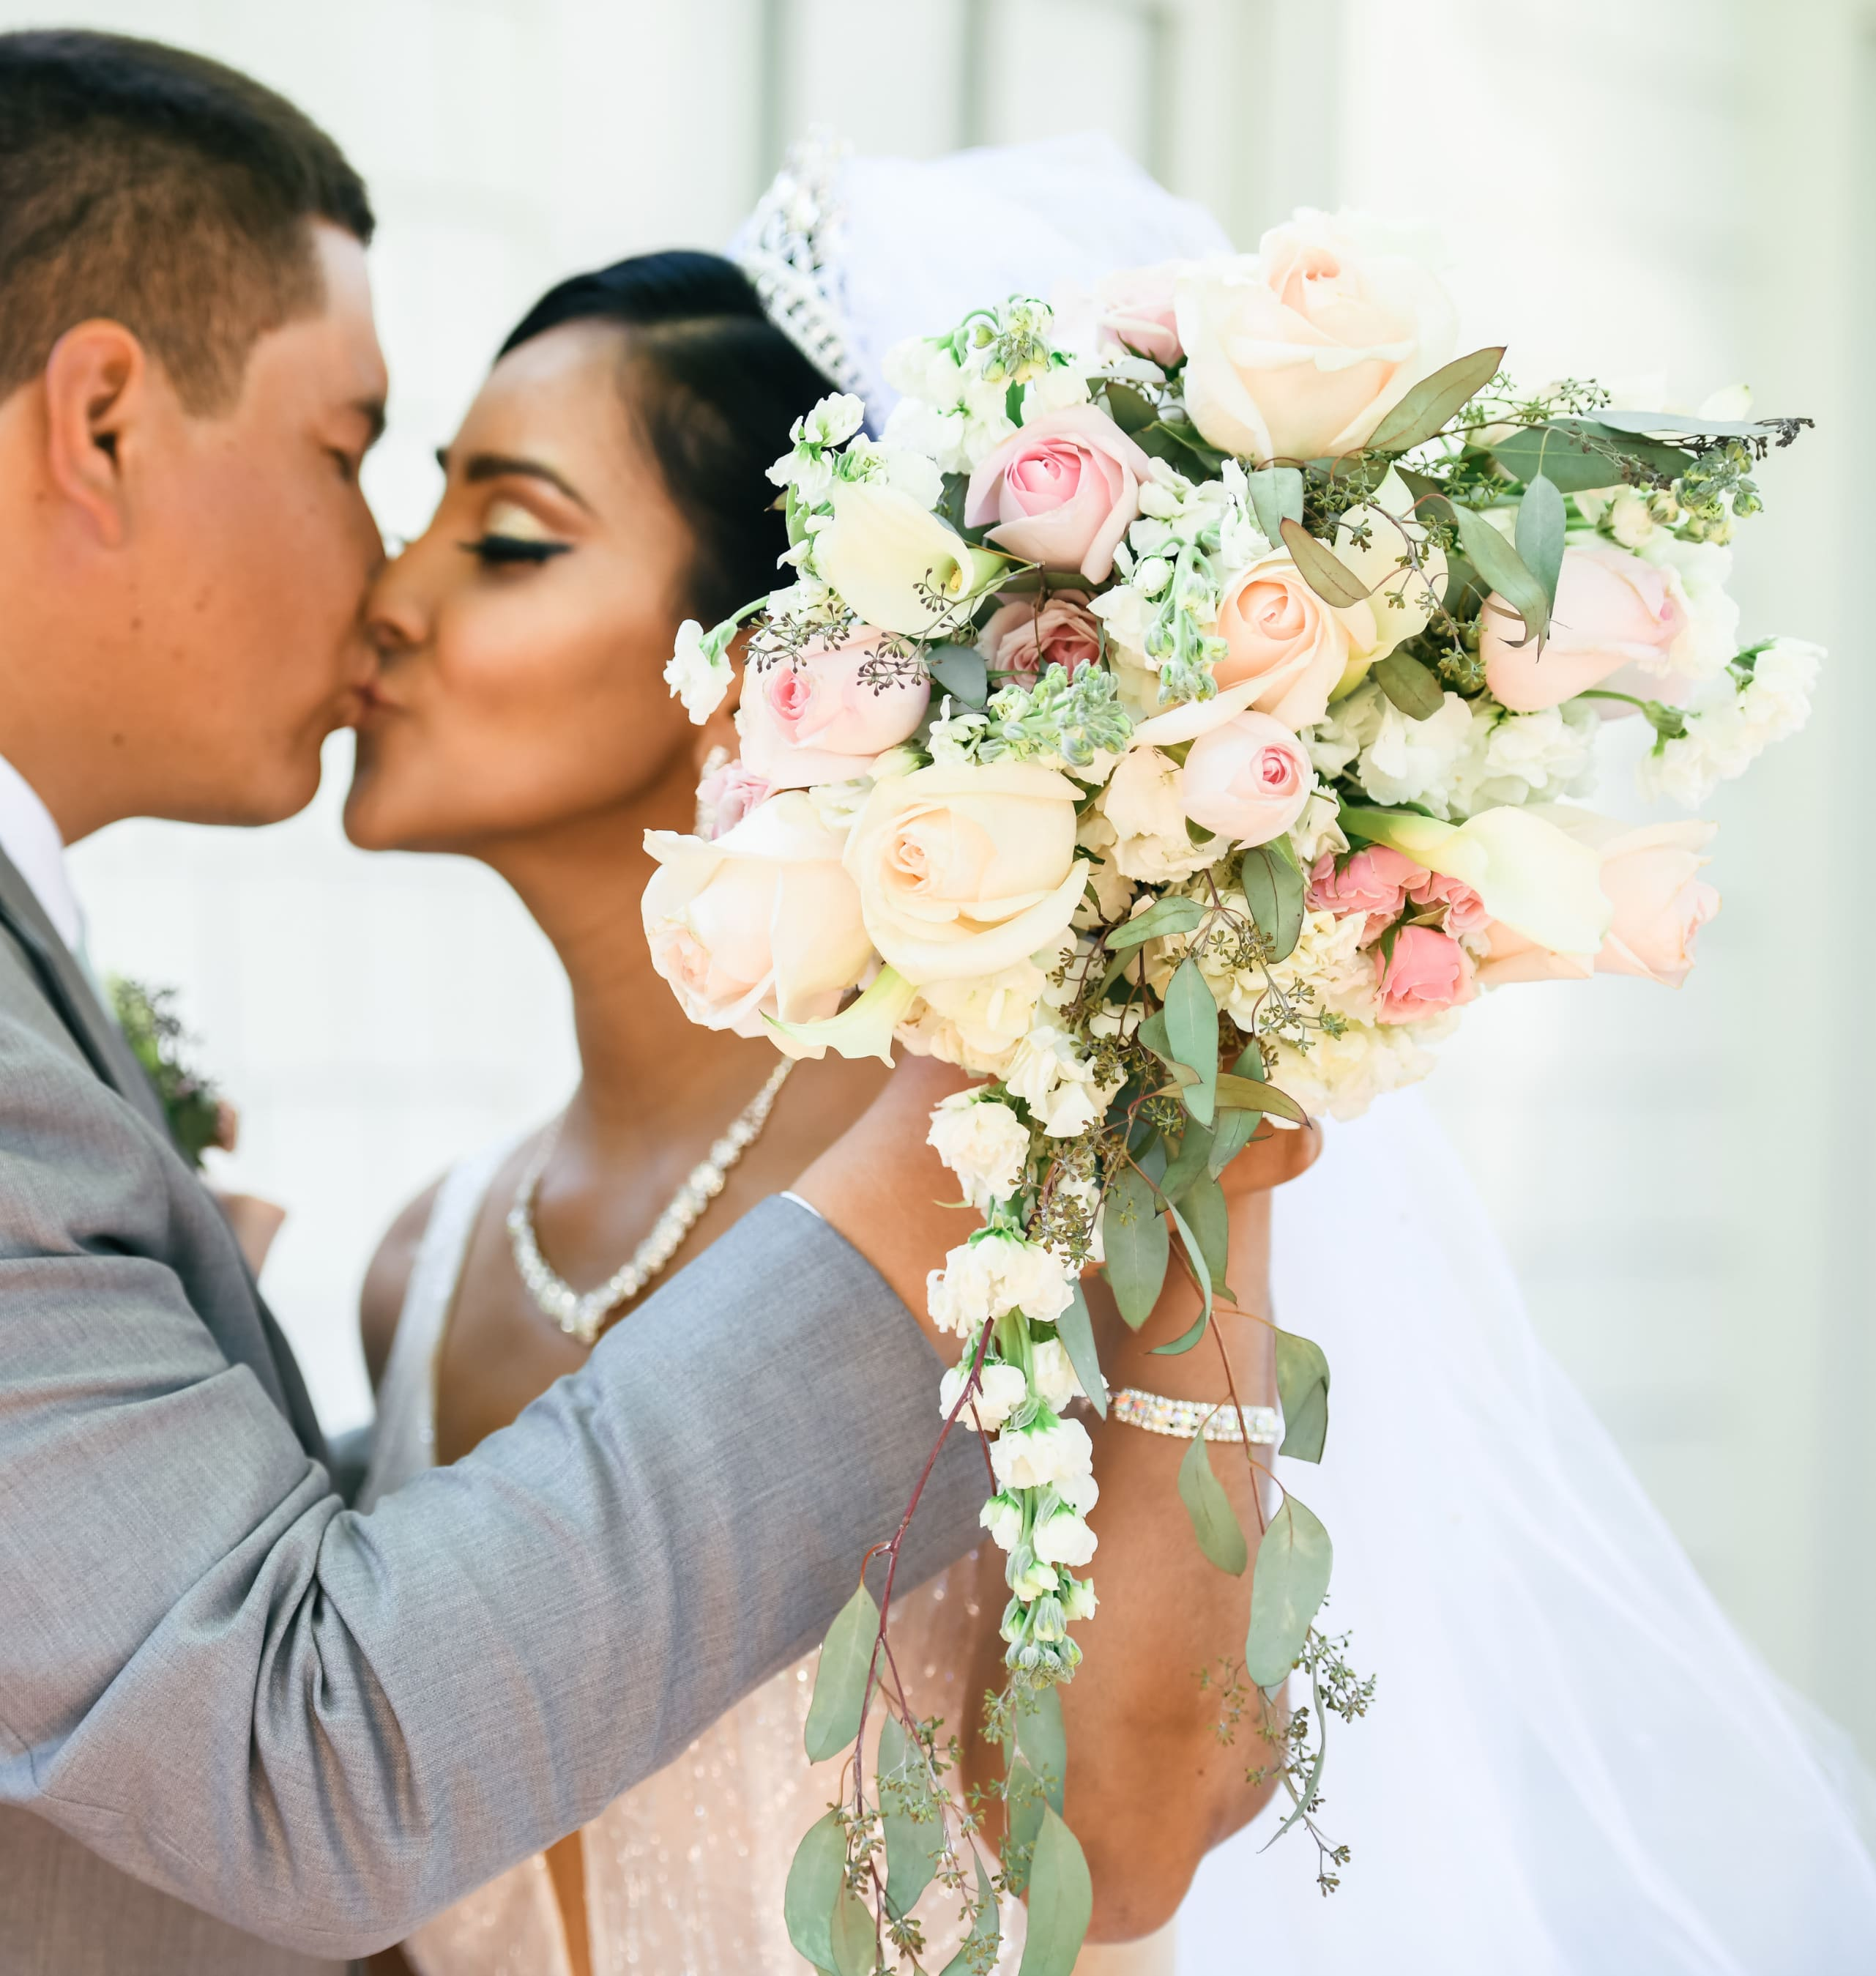 At Flowers of Charlotte, we specialize in wedding consultations, ceremonies, bridal parties, receptions and other special events!